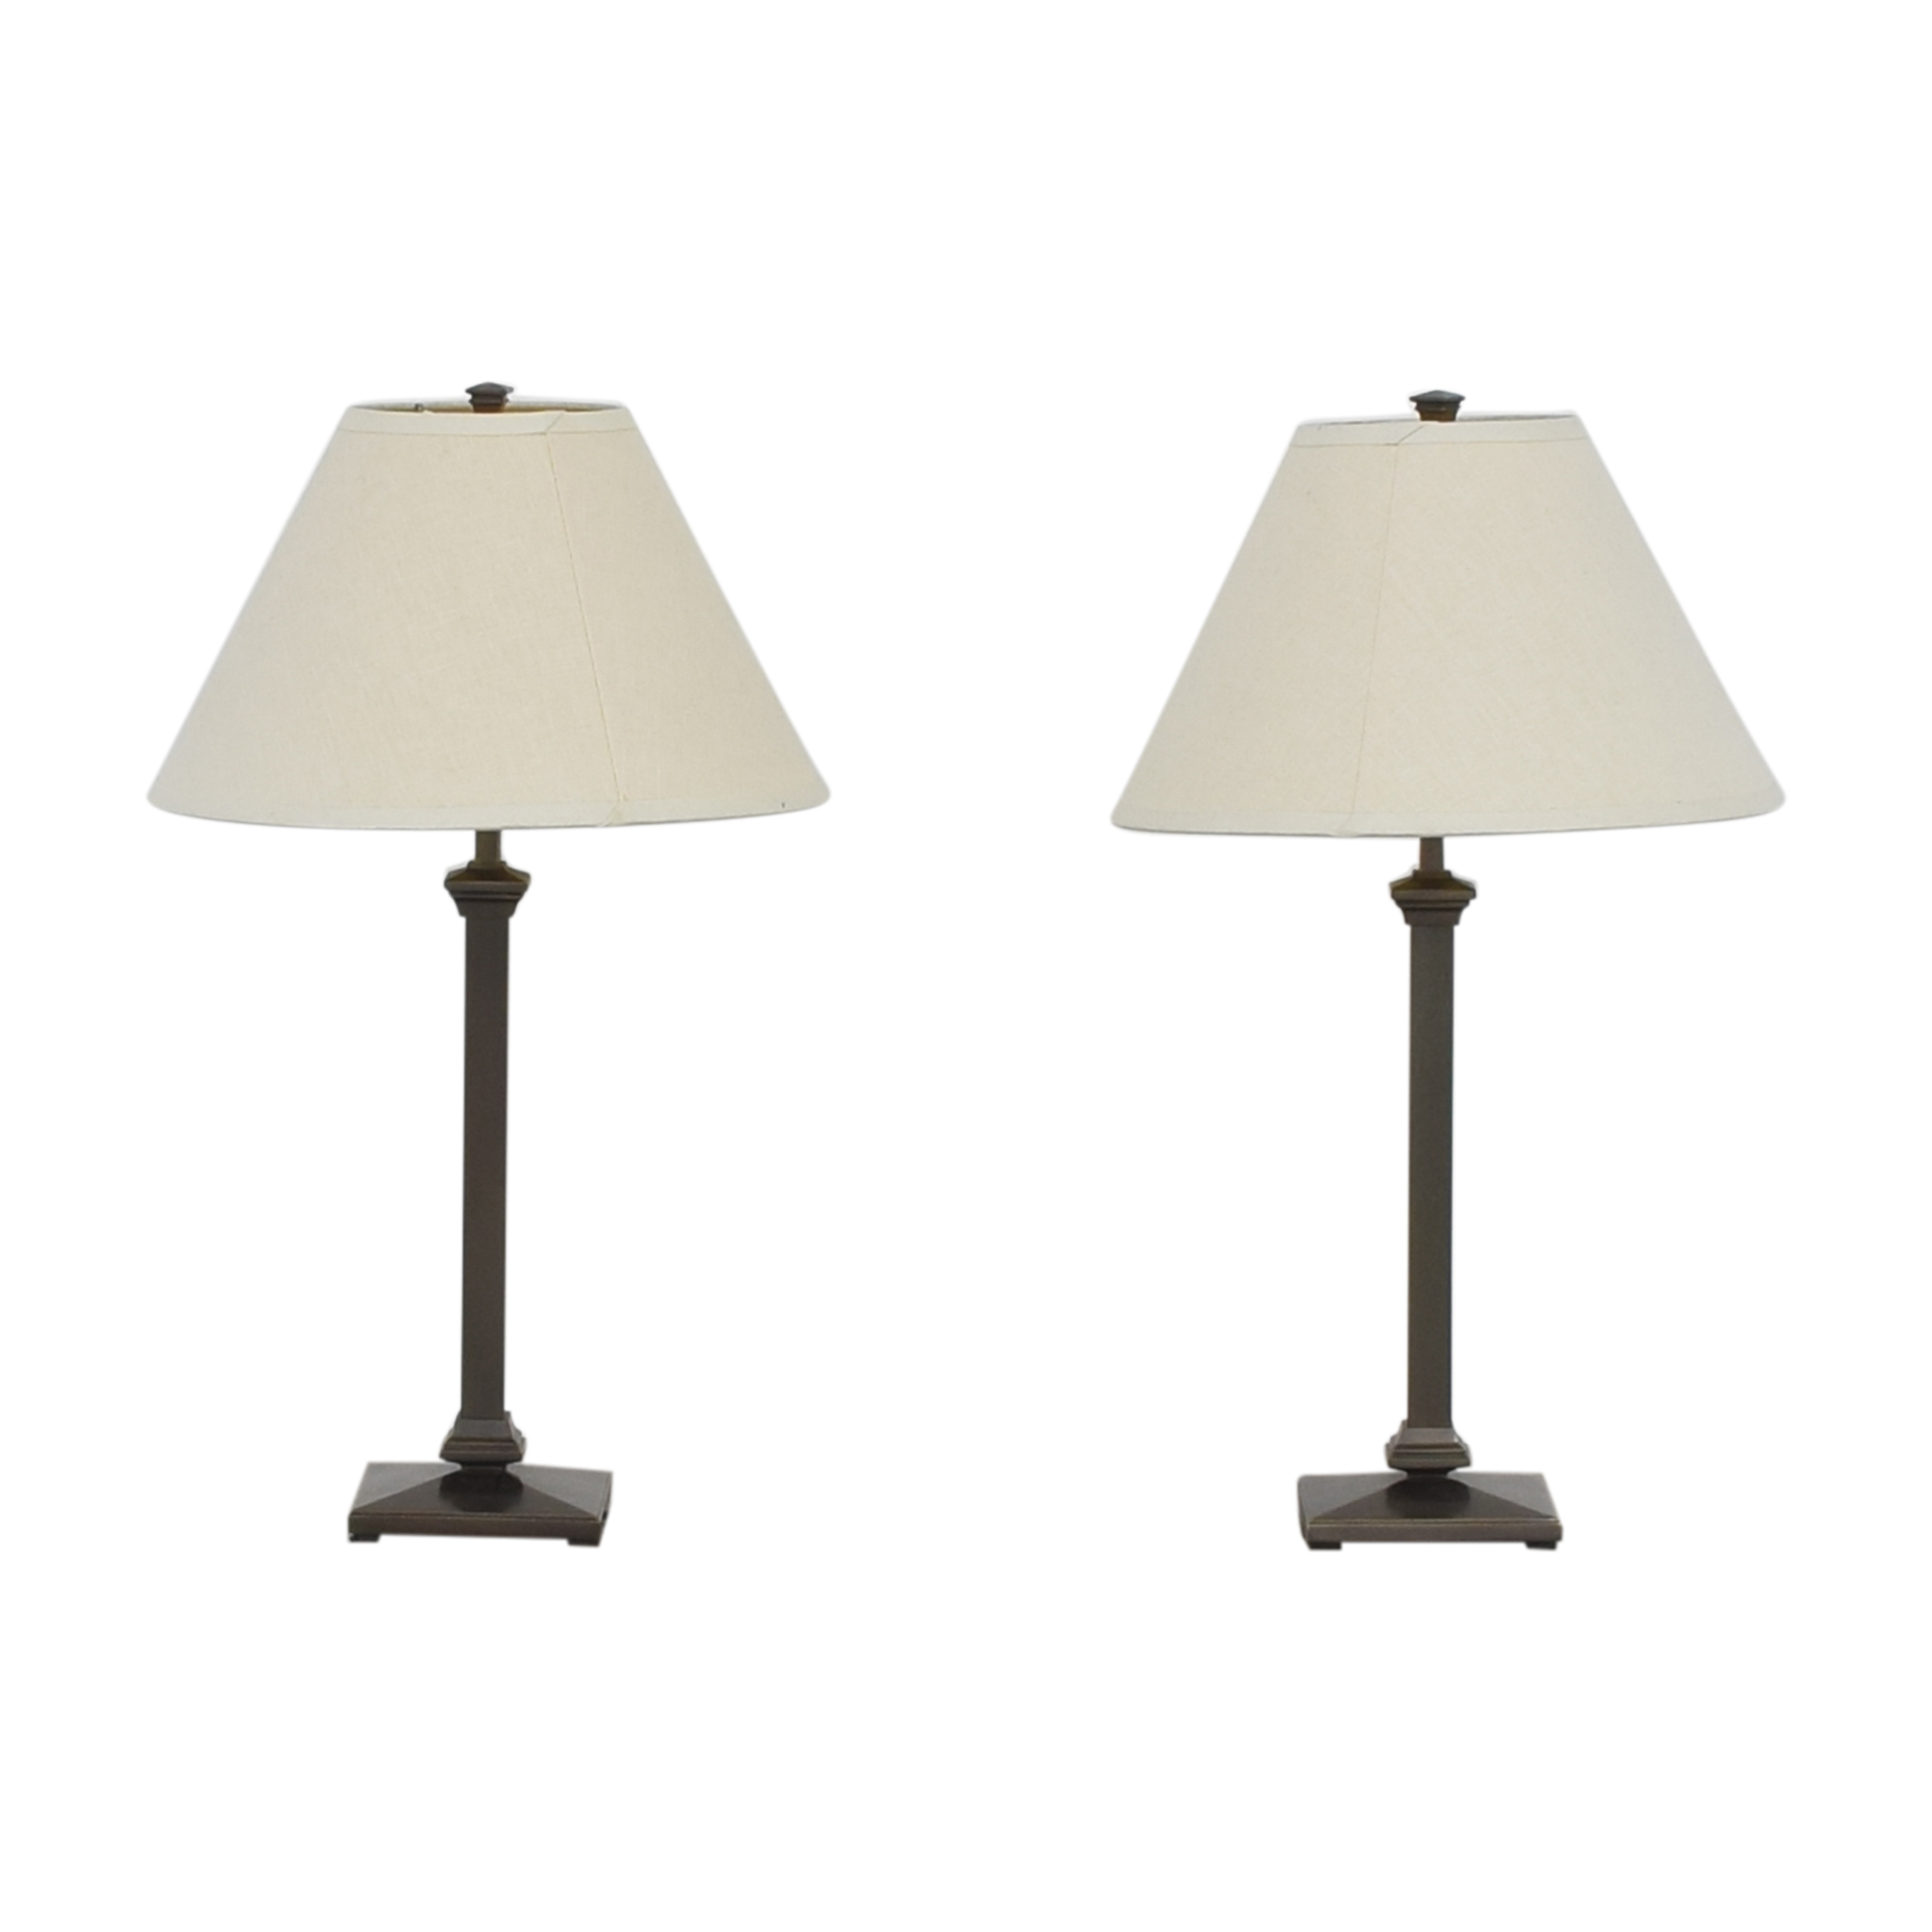 Restoration Hardware Restoration Hardware Small Table Lamps coupon